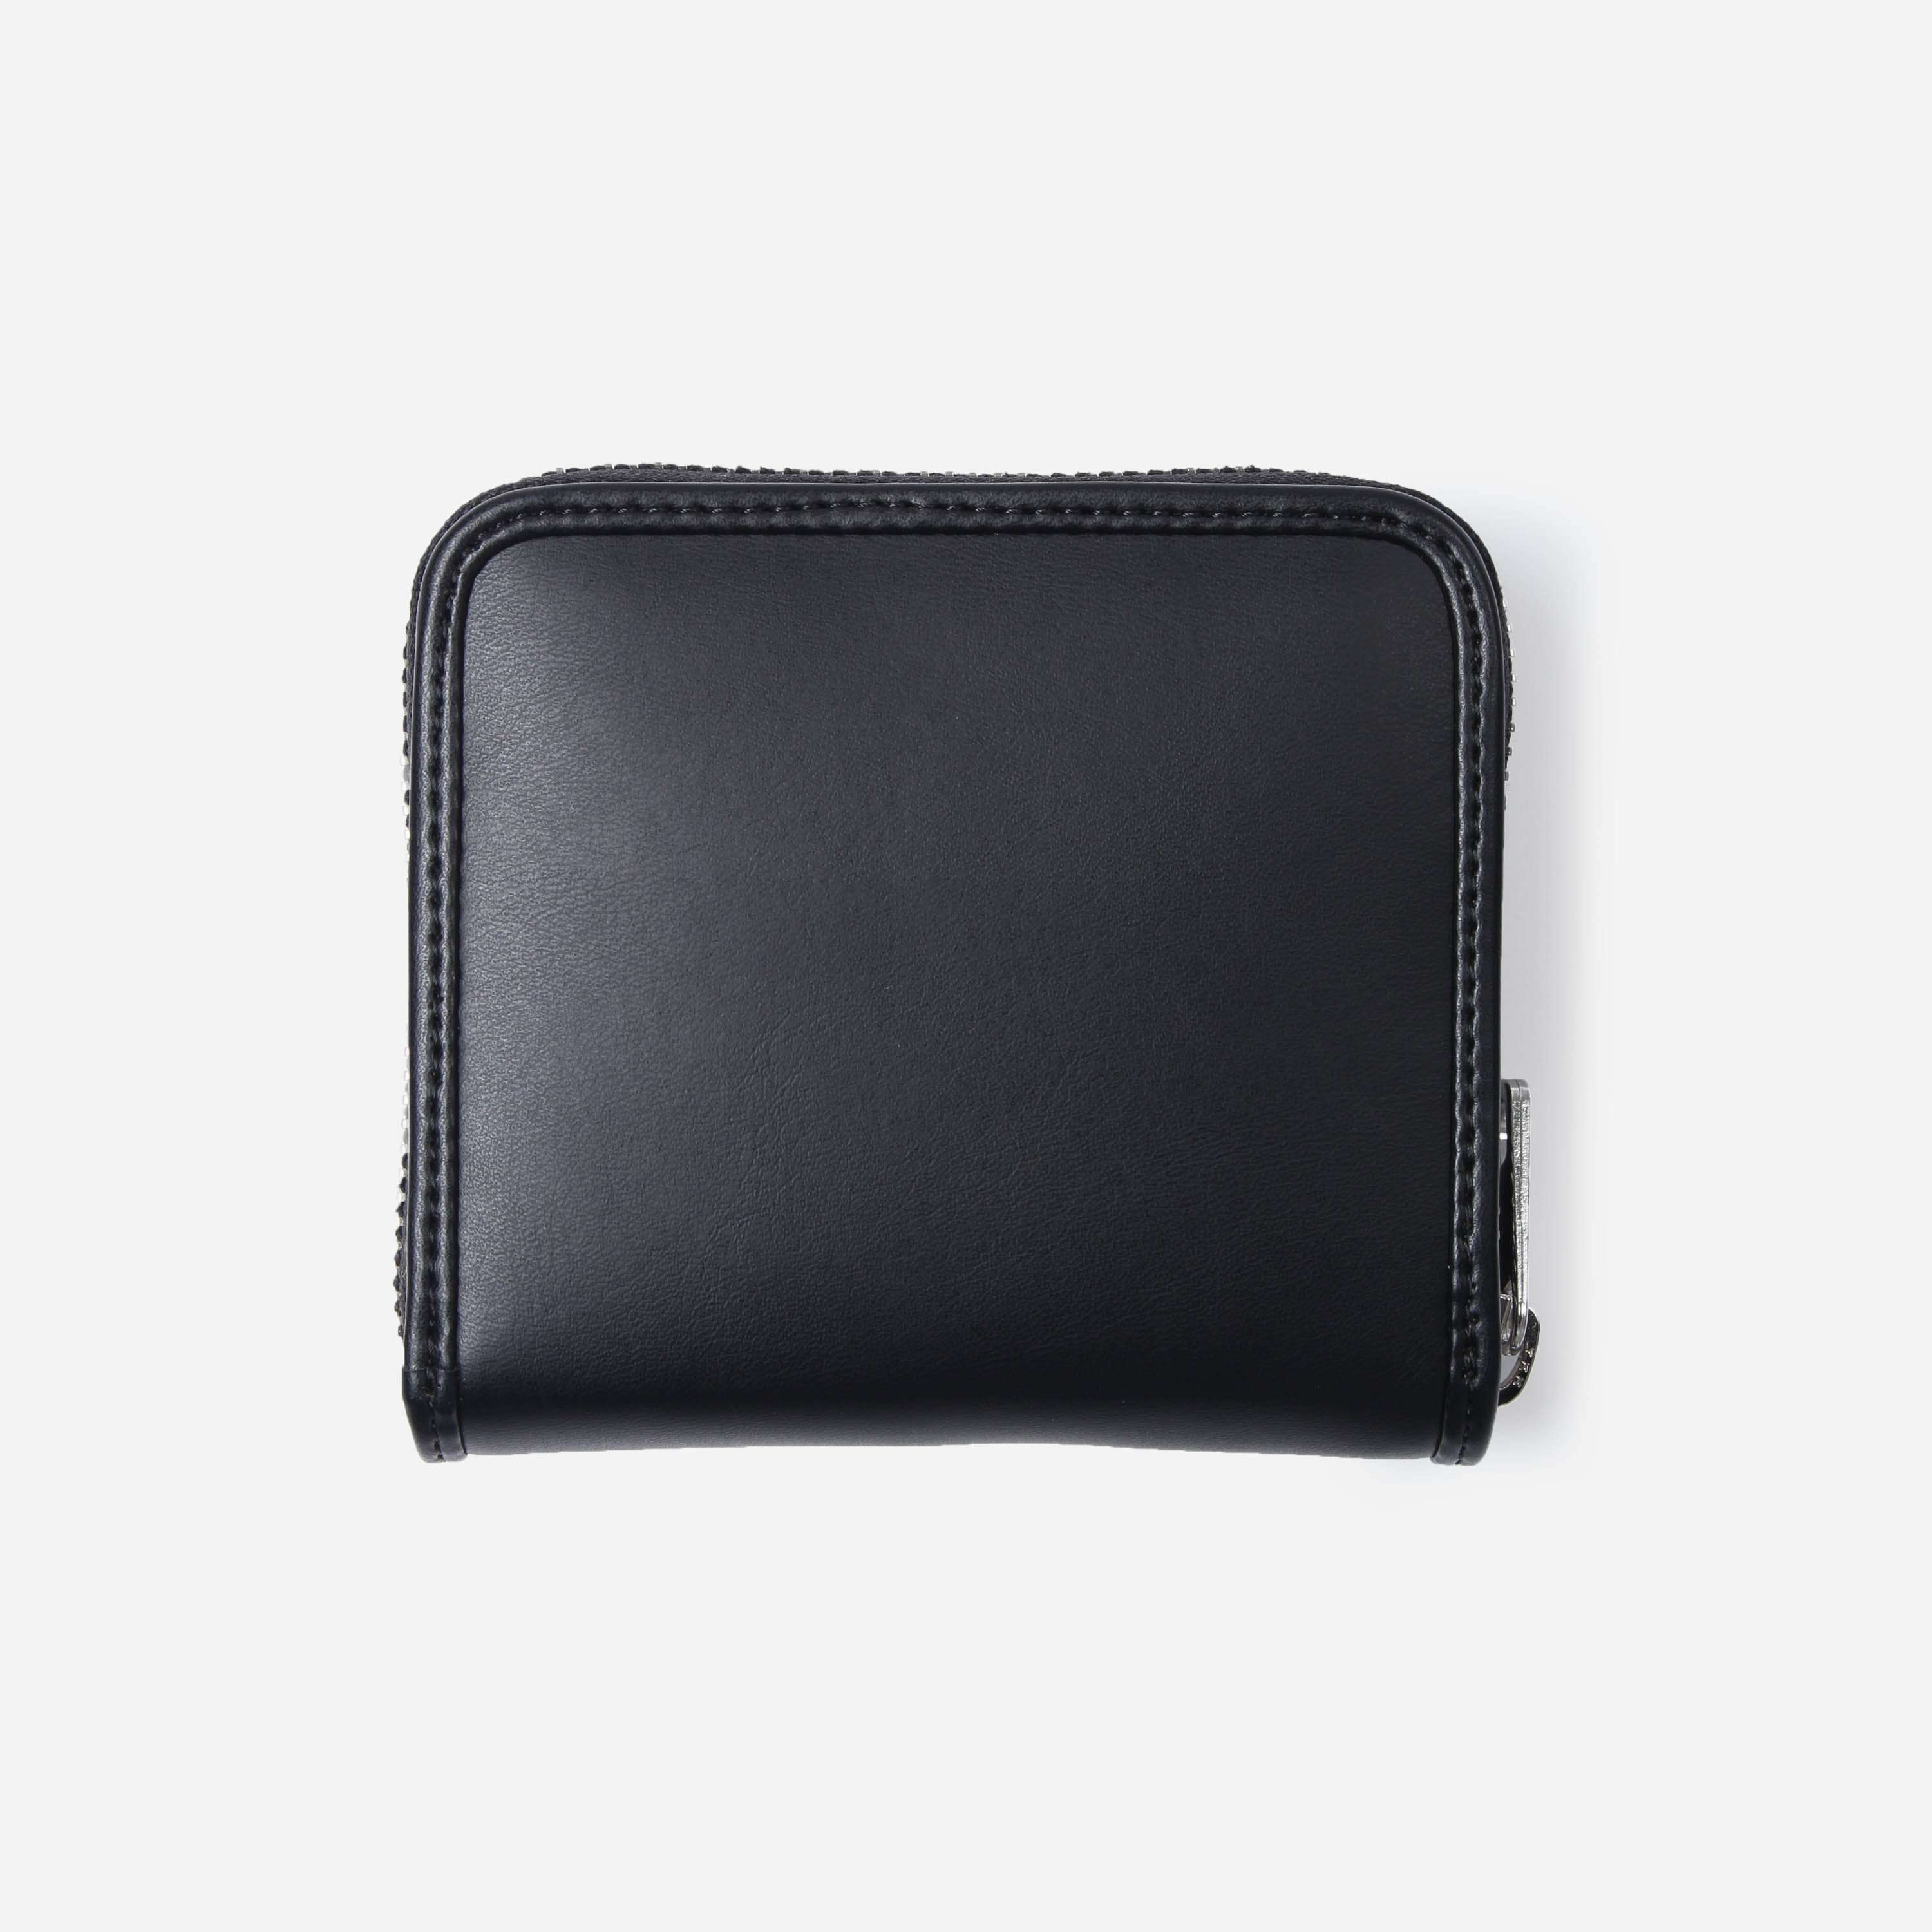 A.P.C. Compact Wallet